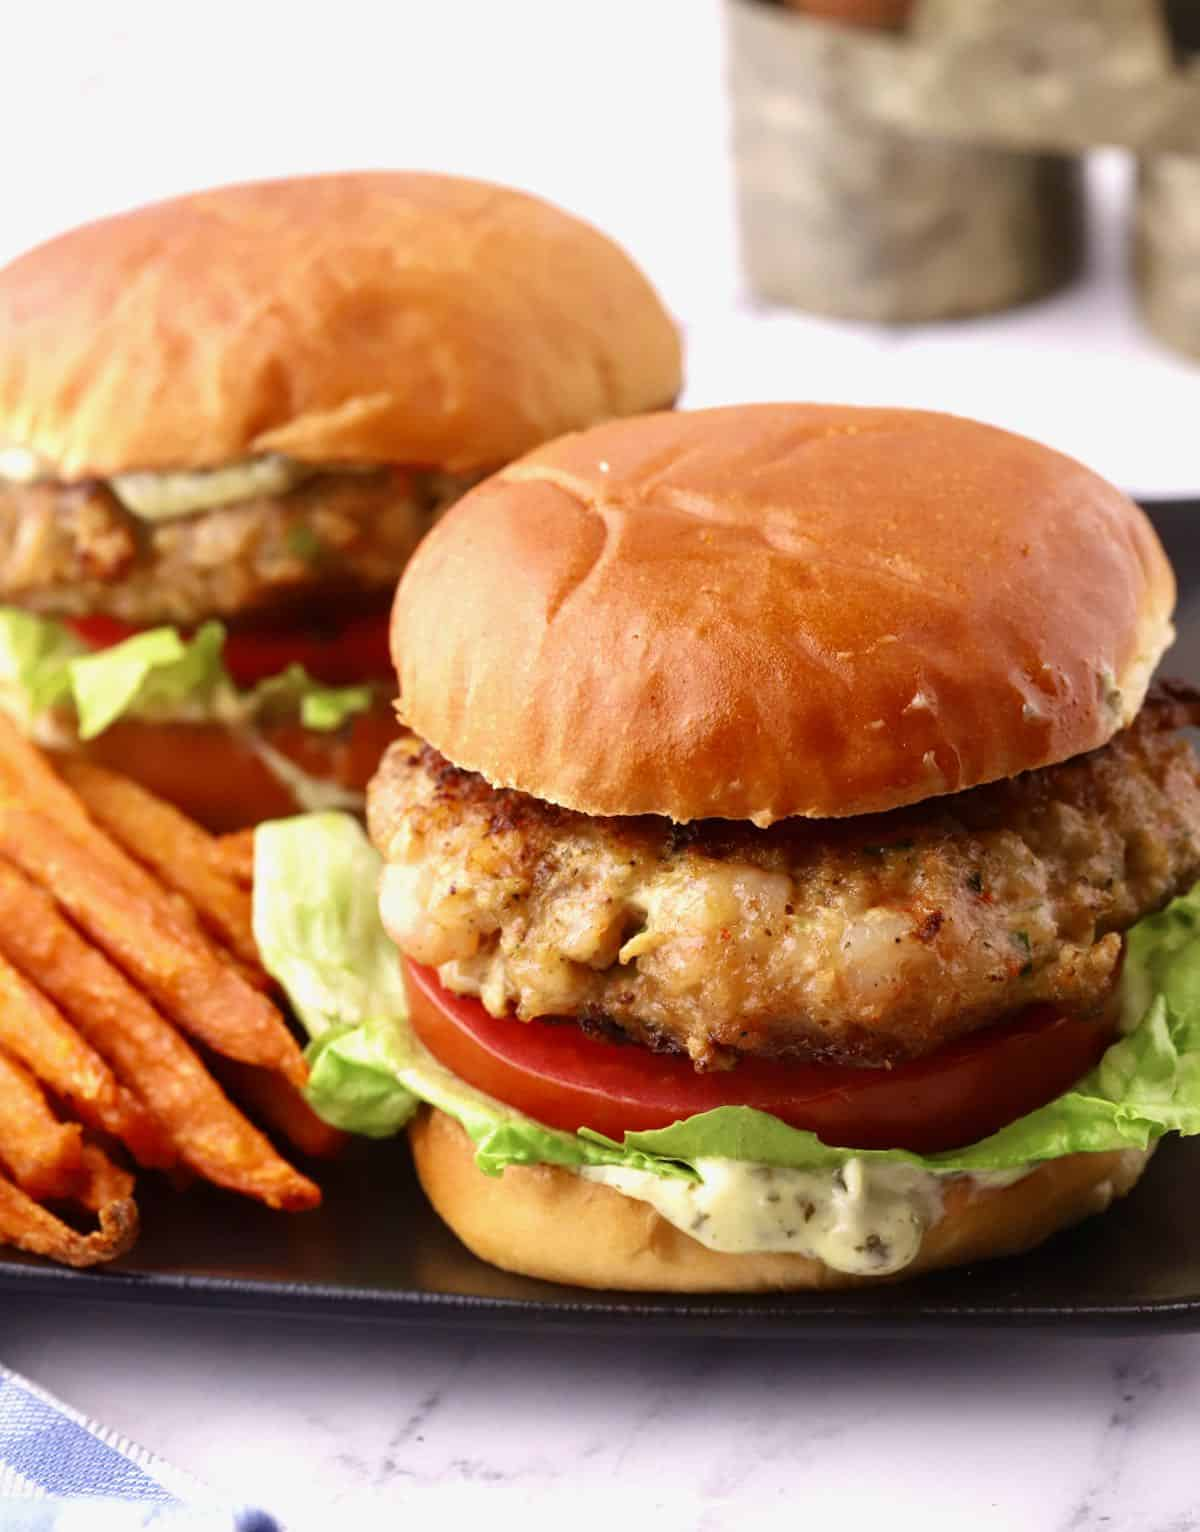 Two shrimp burgers with lettuce and tomato.